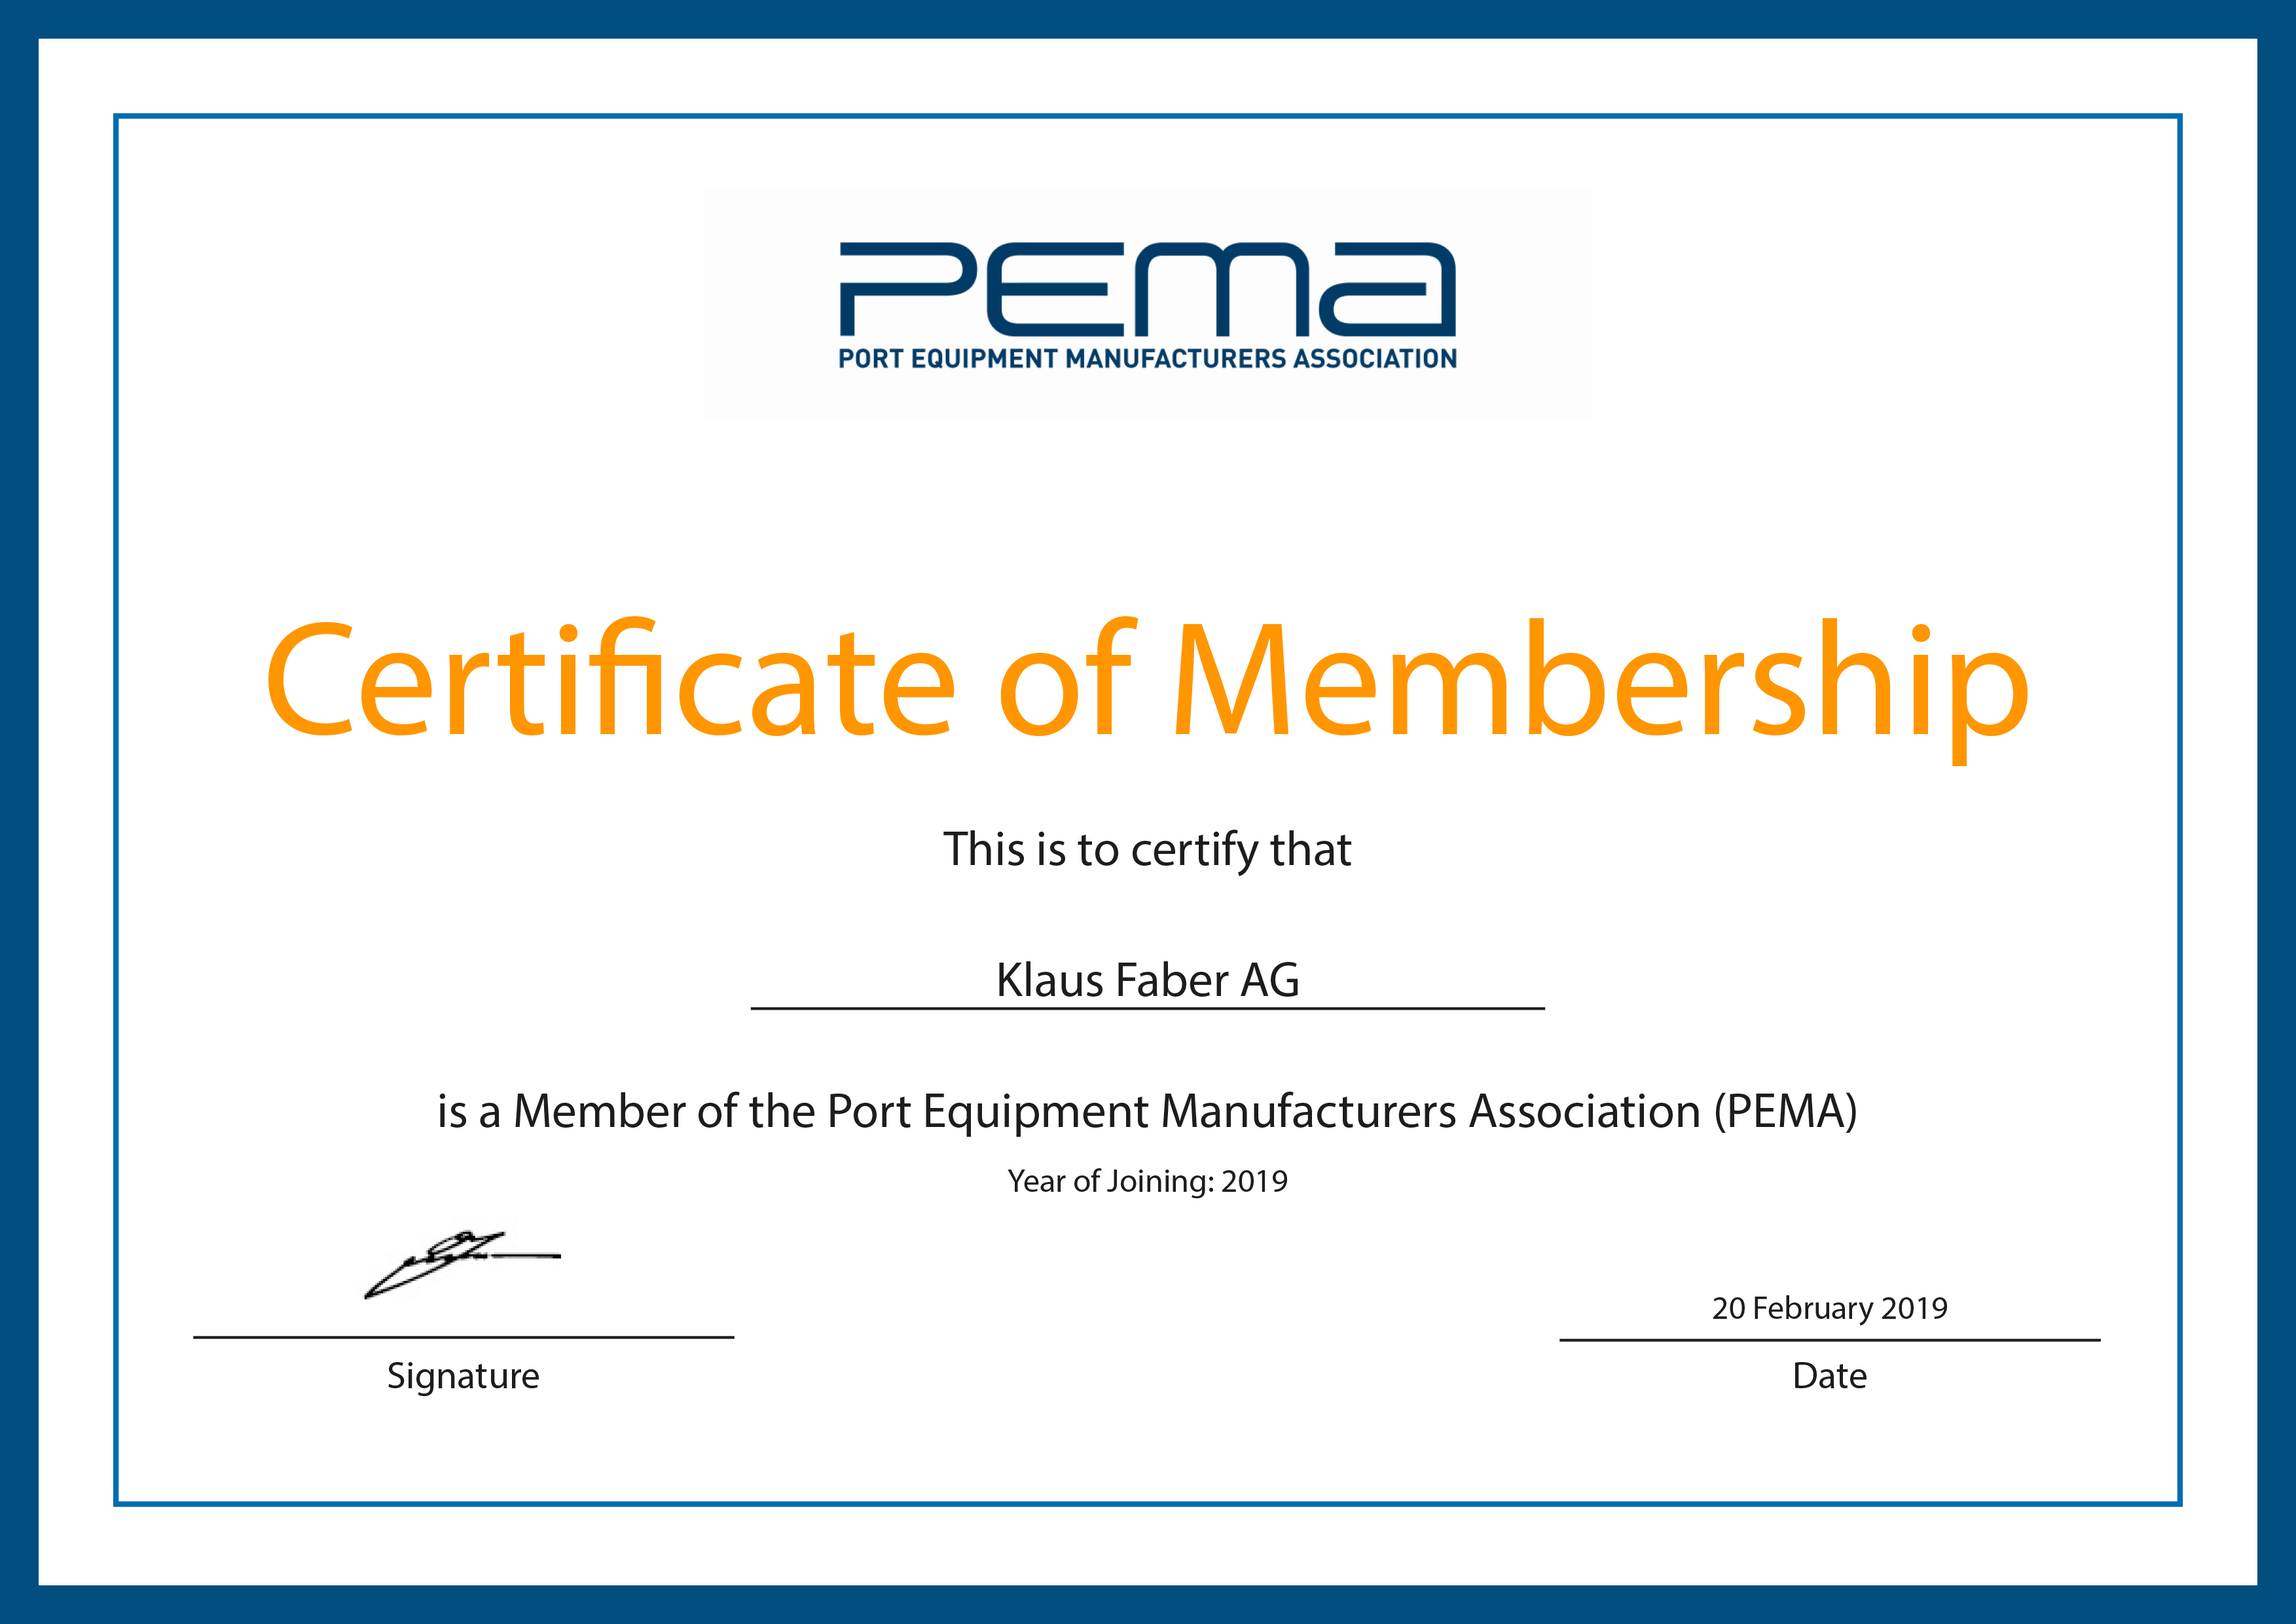 PEMA Membership confirmed